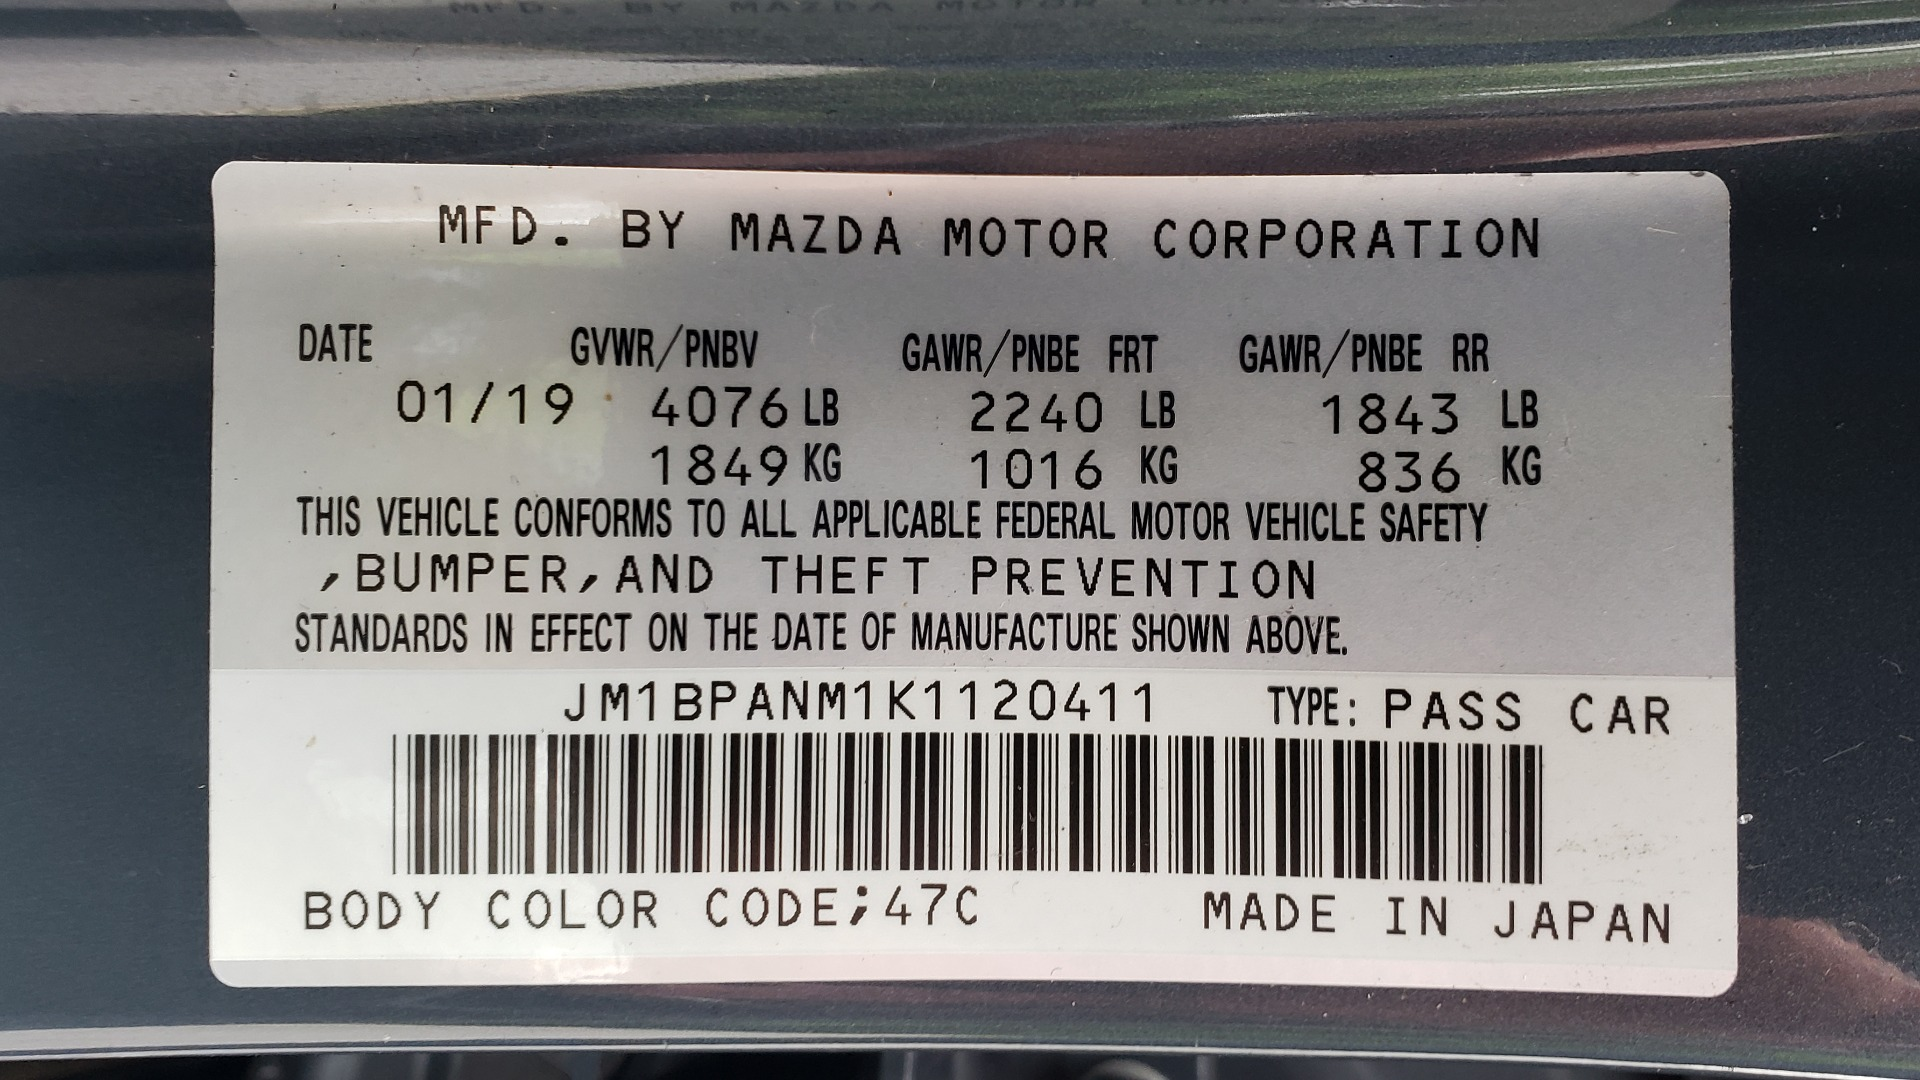 Used 2019 Mazda MAZDA3 HATCHBACK PREMIUM PKG / AUTO / 18IN BLACK ALLOY WHEELS / BOSE / LEATHER for sale Sold at Formula Imports in Charlotte NC 28227 79